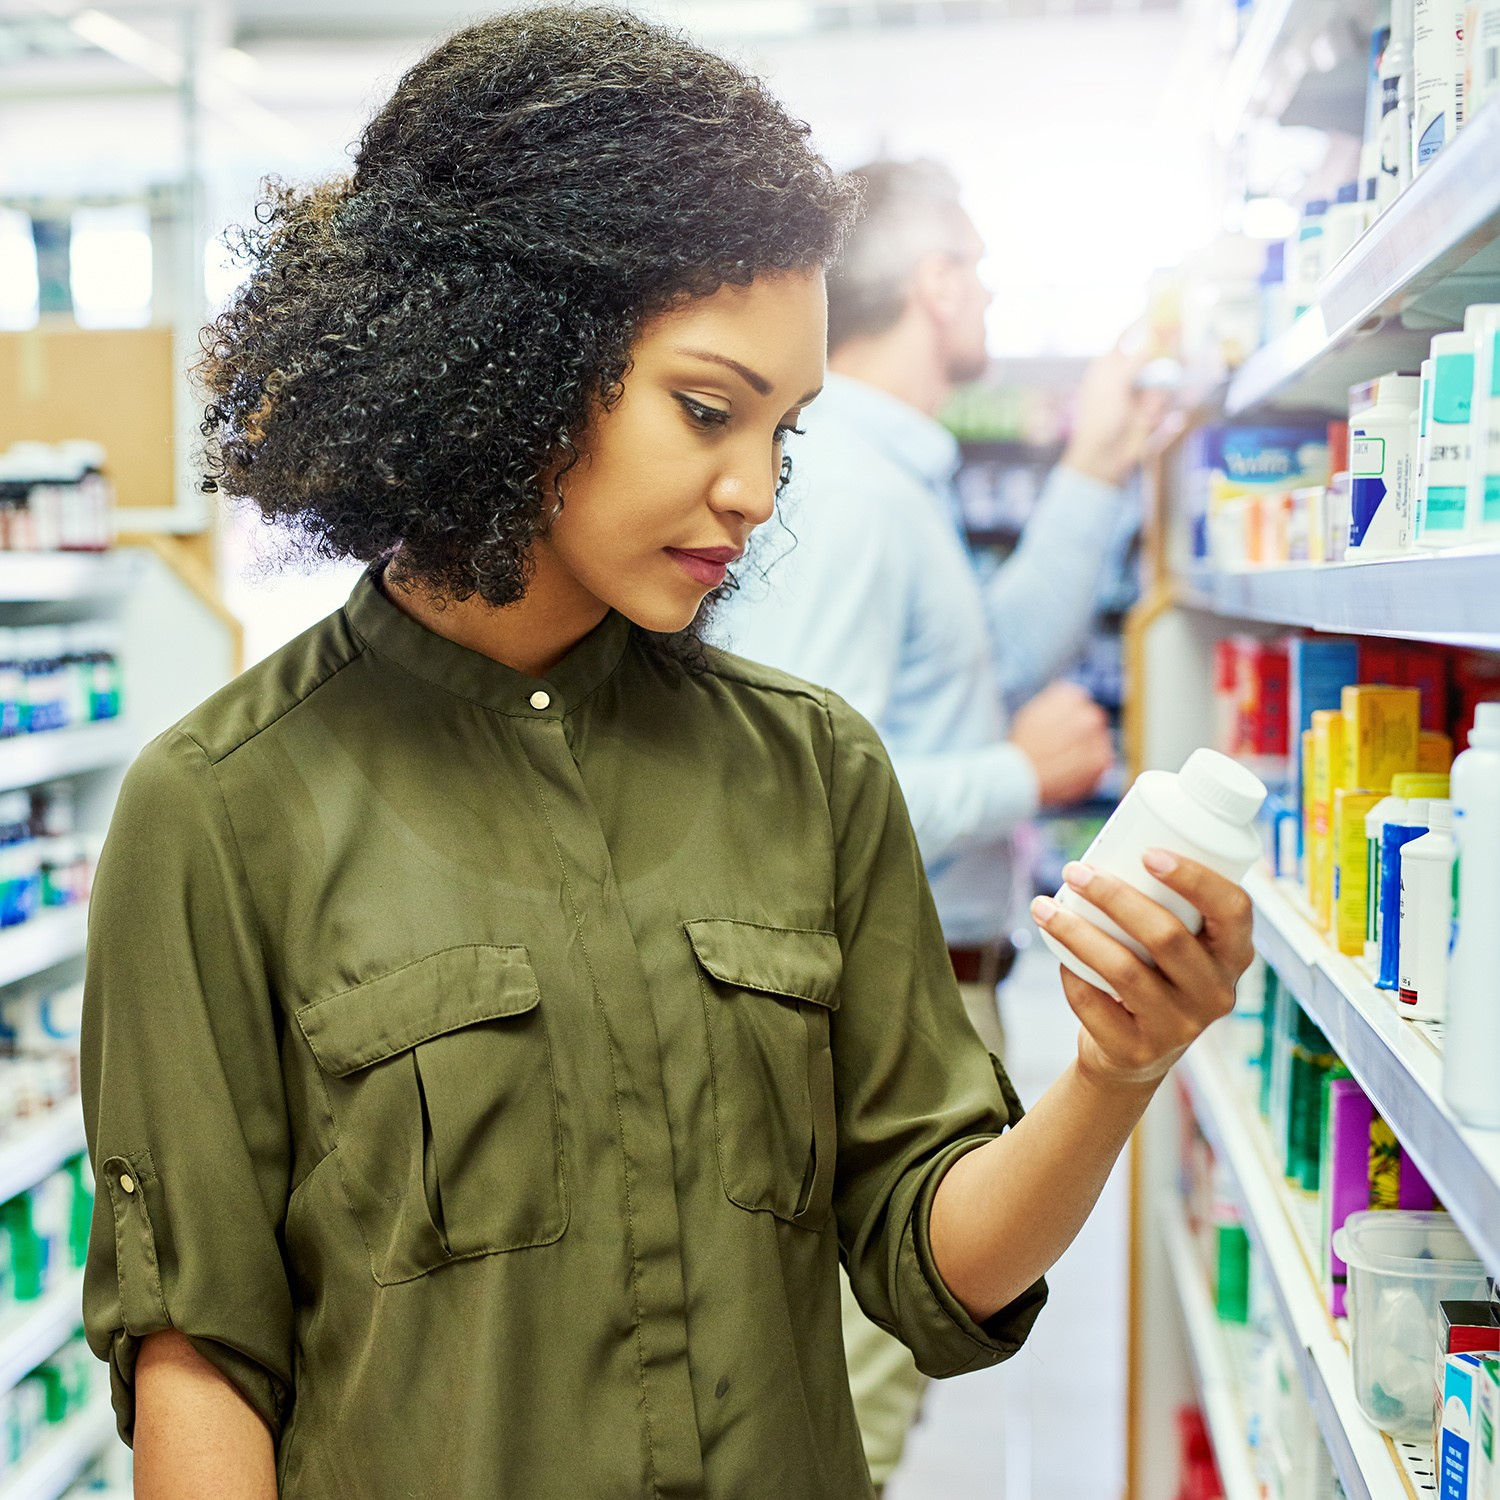 Using Dietary Supplements Wisely | NCCIH